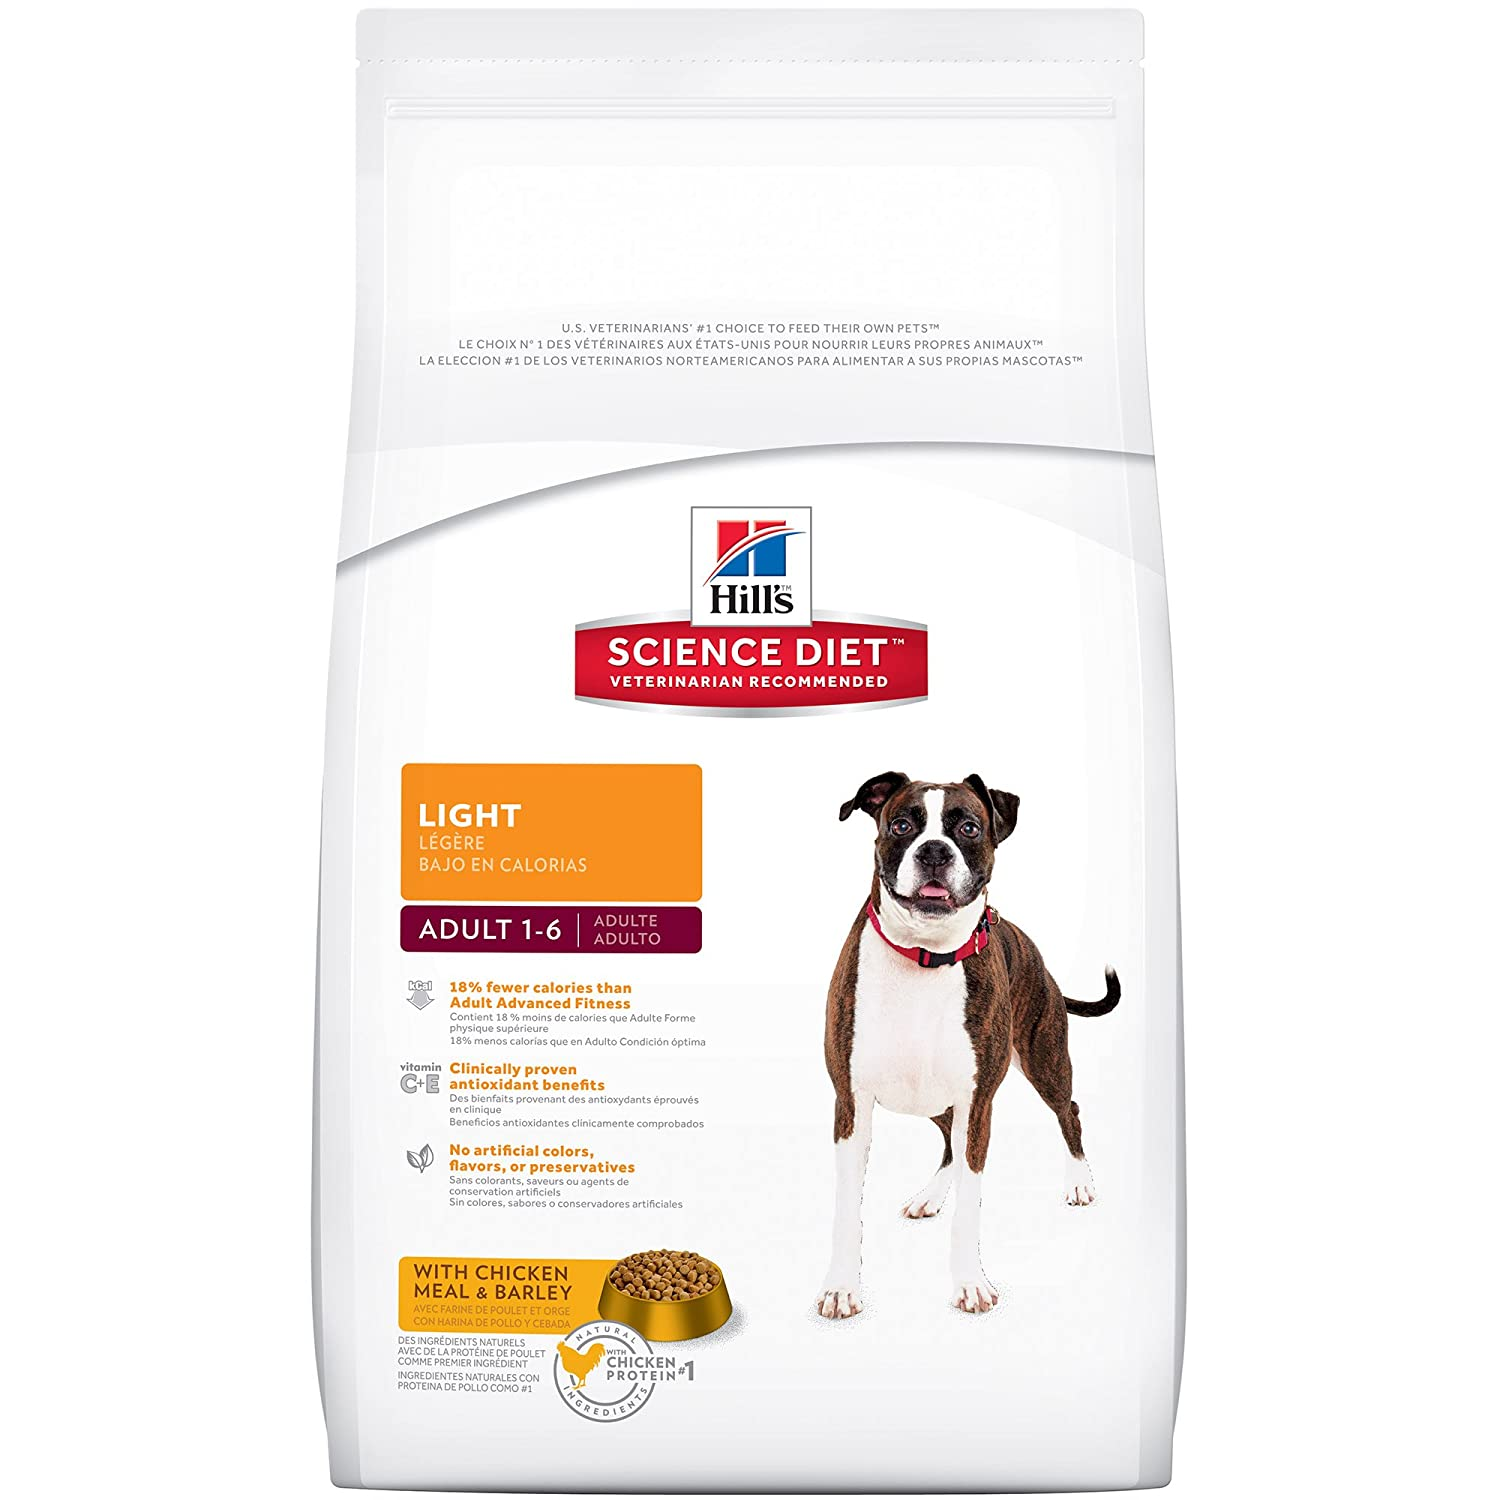 Amazoncom Hills Science Diet Adult Light Dog Food Chicken Meal